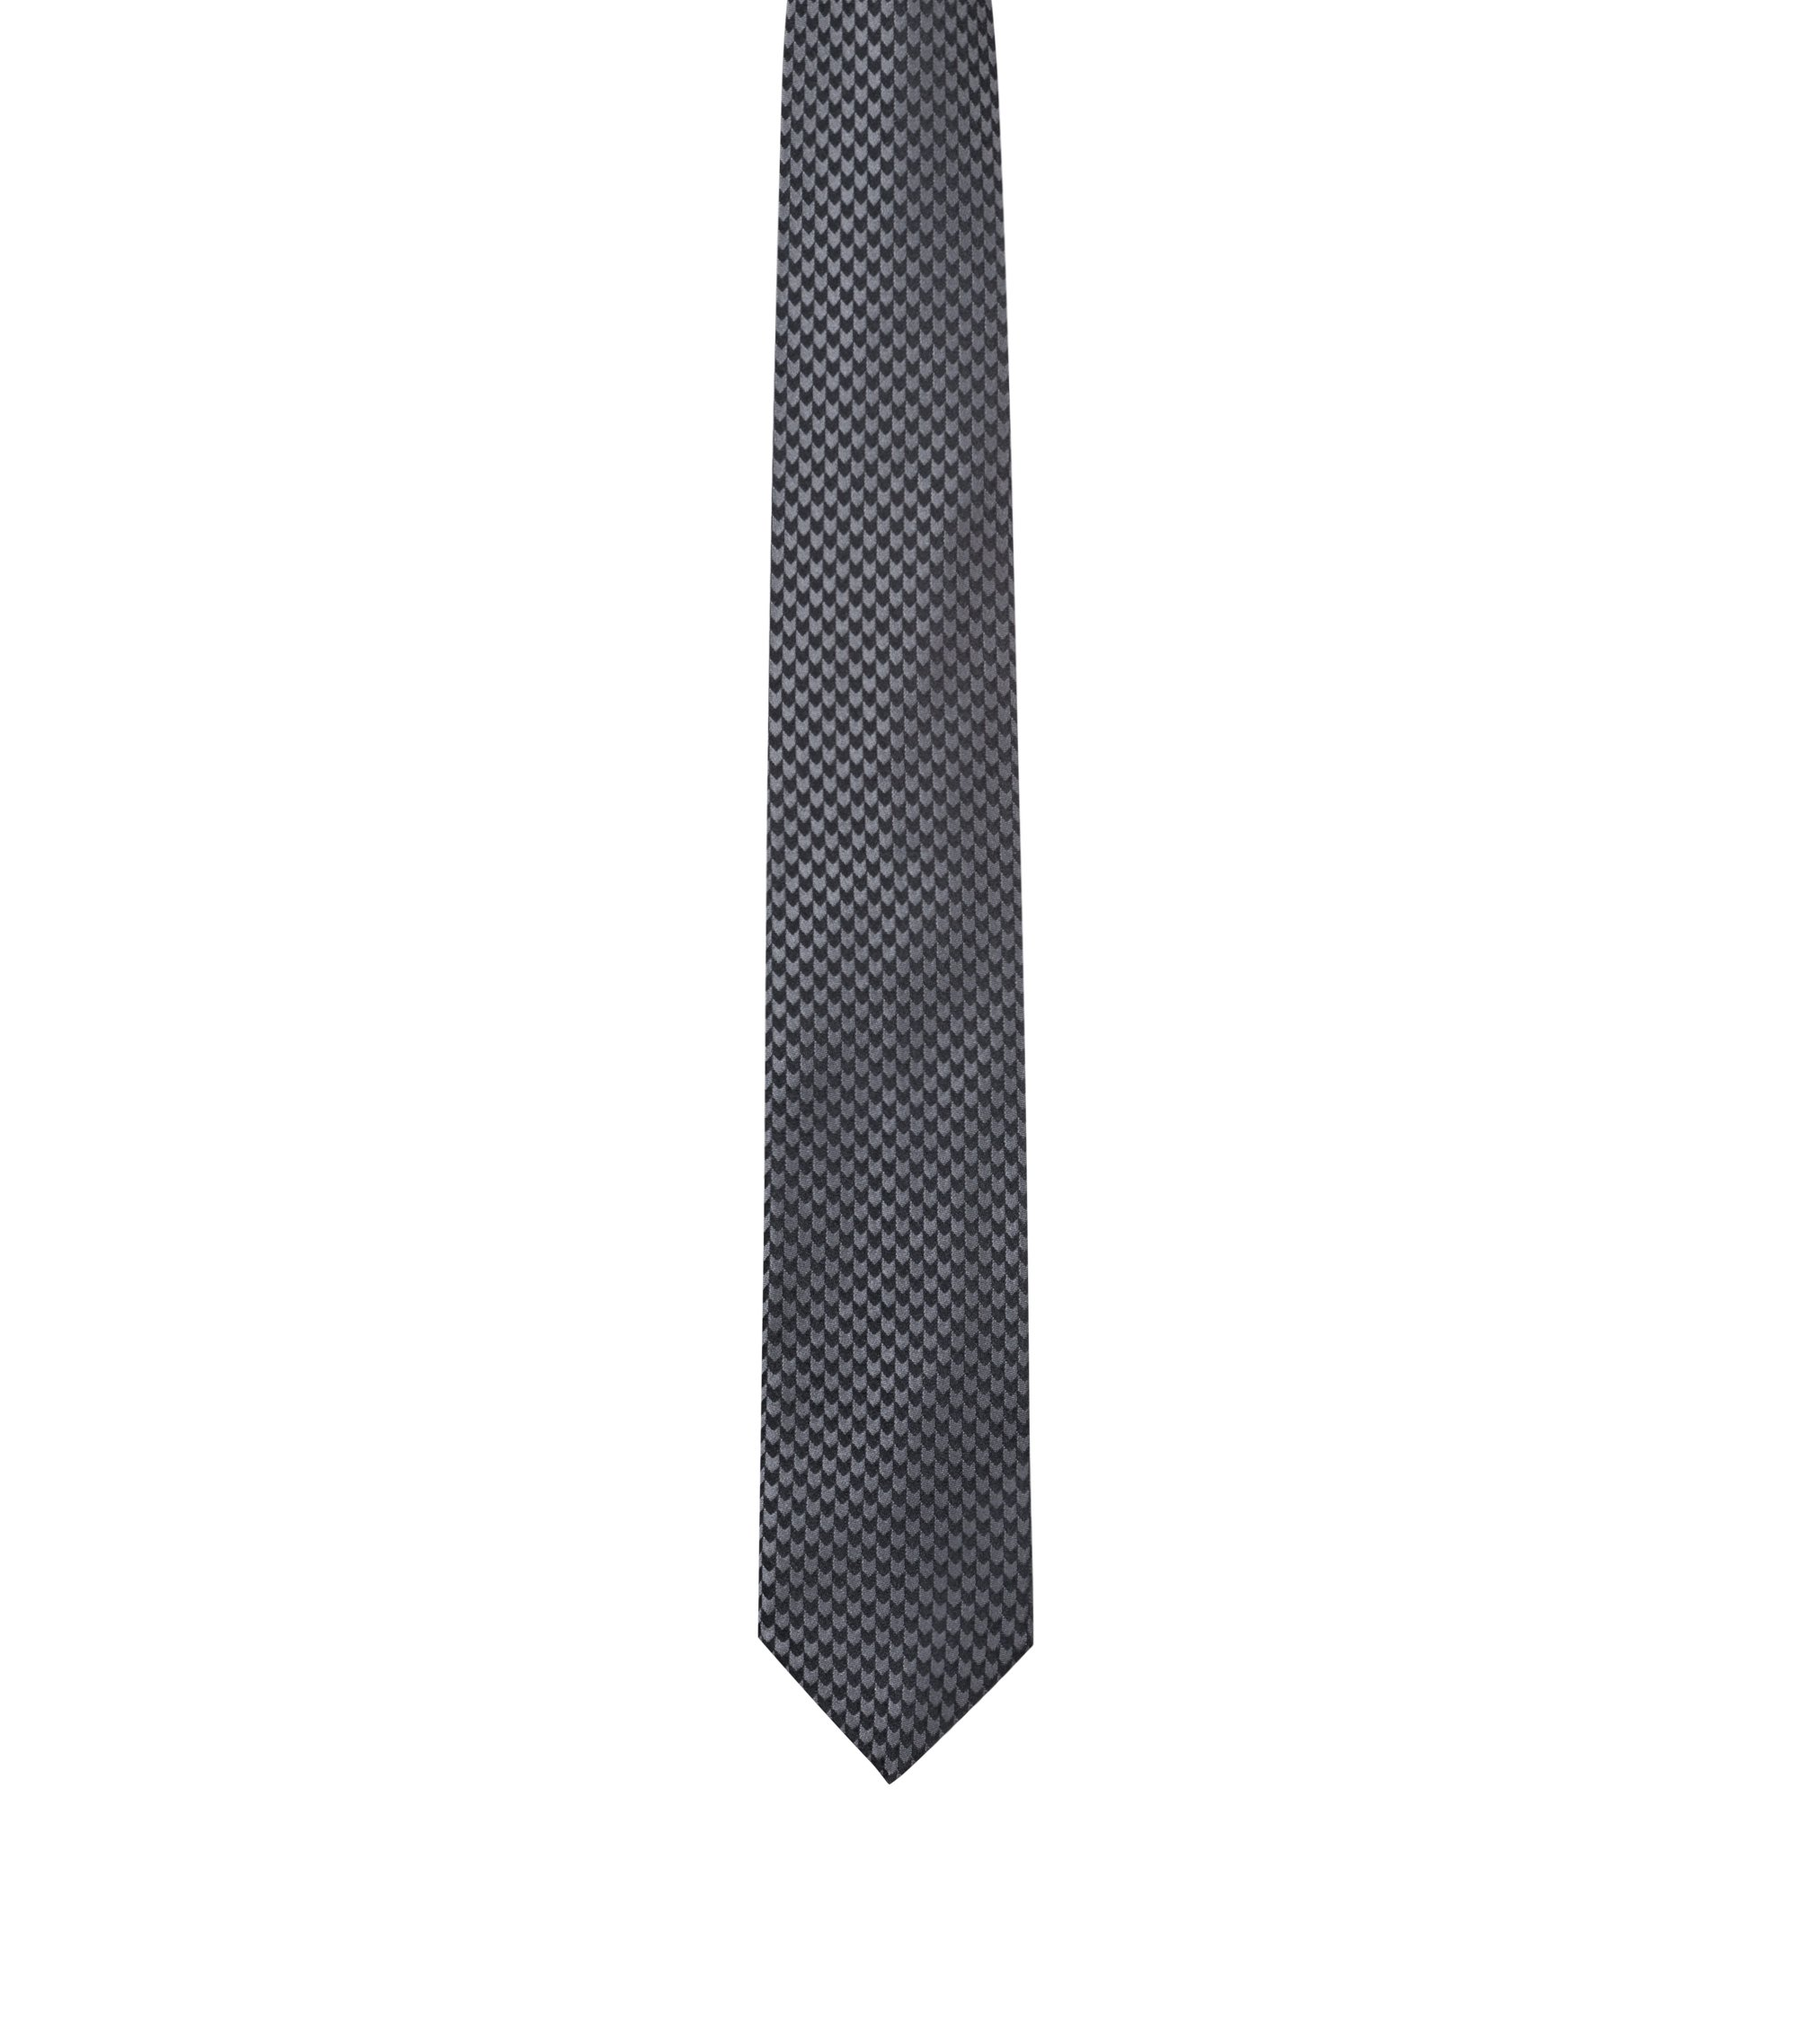 Silk tie in micro-pattern jacquard, Grey